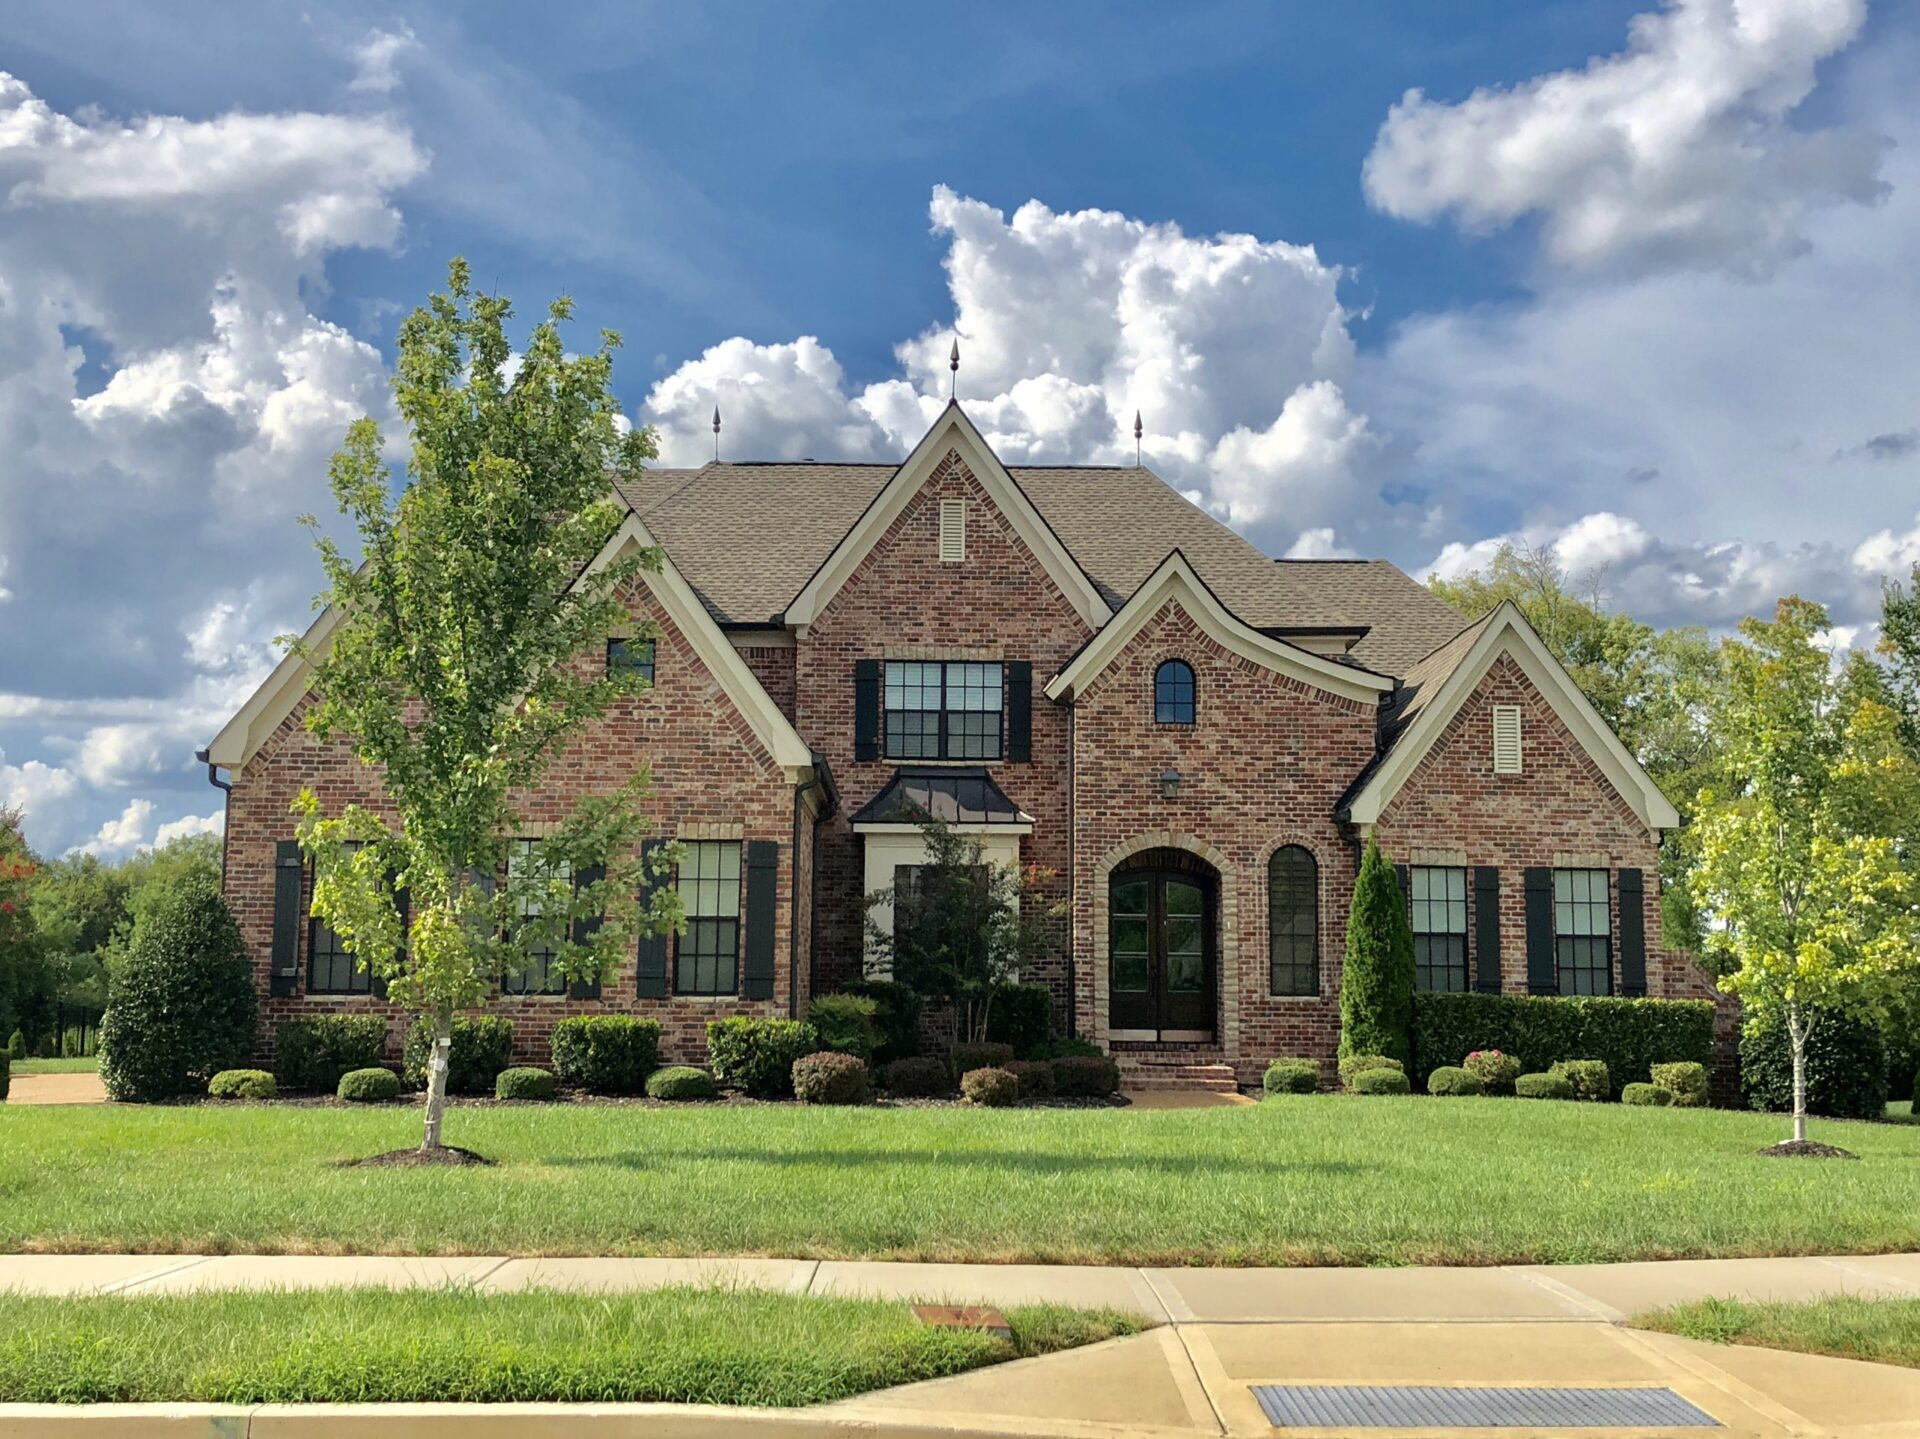 Westchester A - High-end home builders for luxury homes - luxury home builder | Nashville, TN